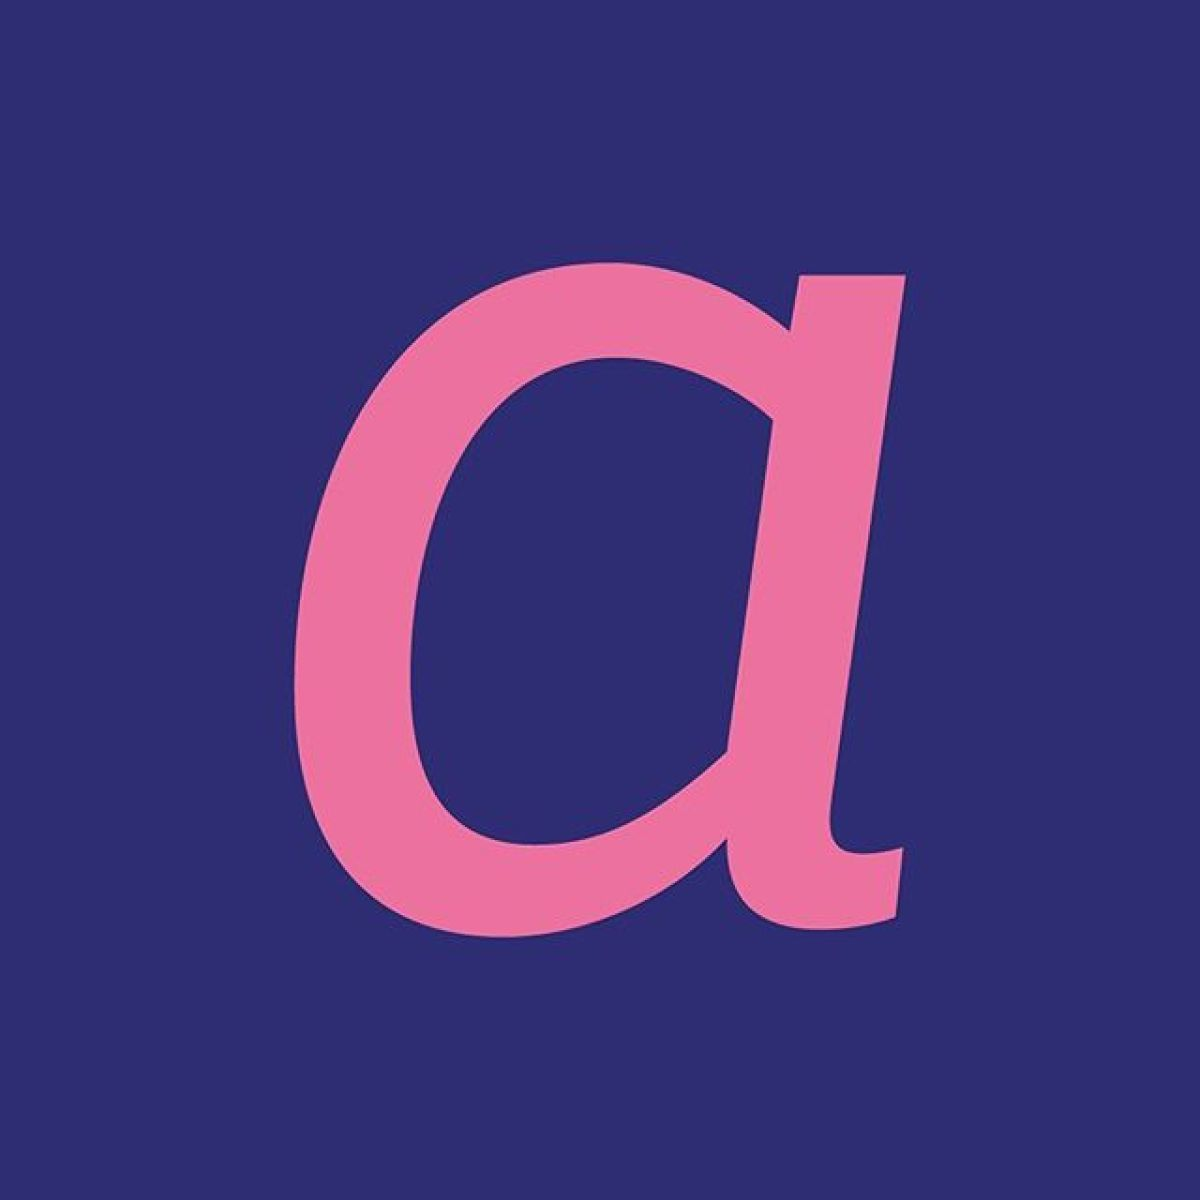 a — #a #wip #workinprogress  #typography #typophile #fonts #font #typeface #design #adellesans